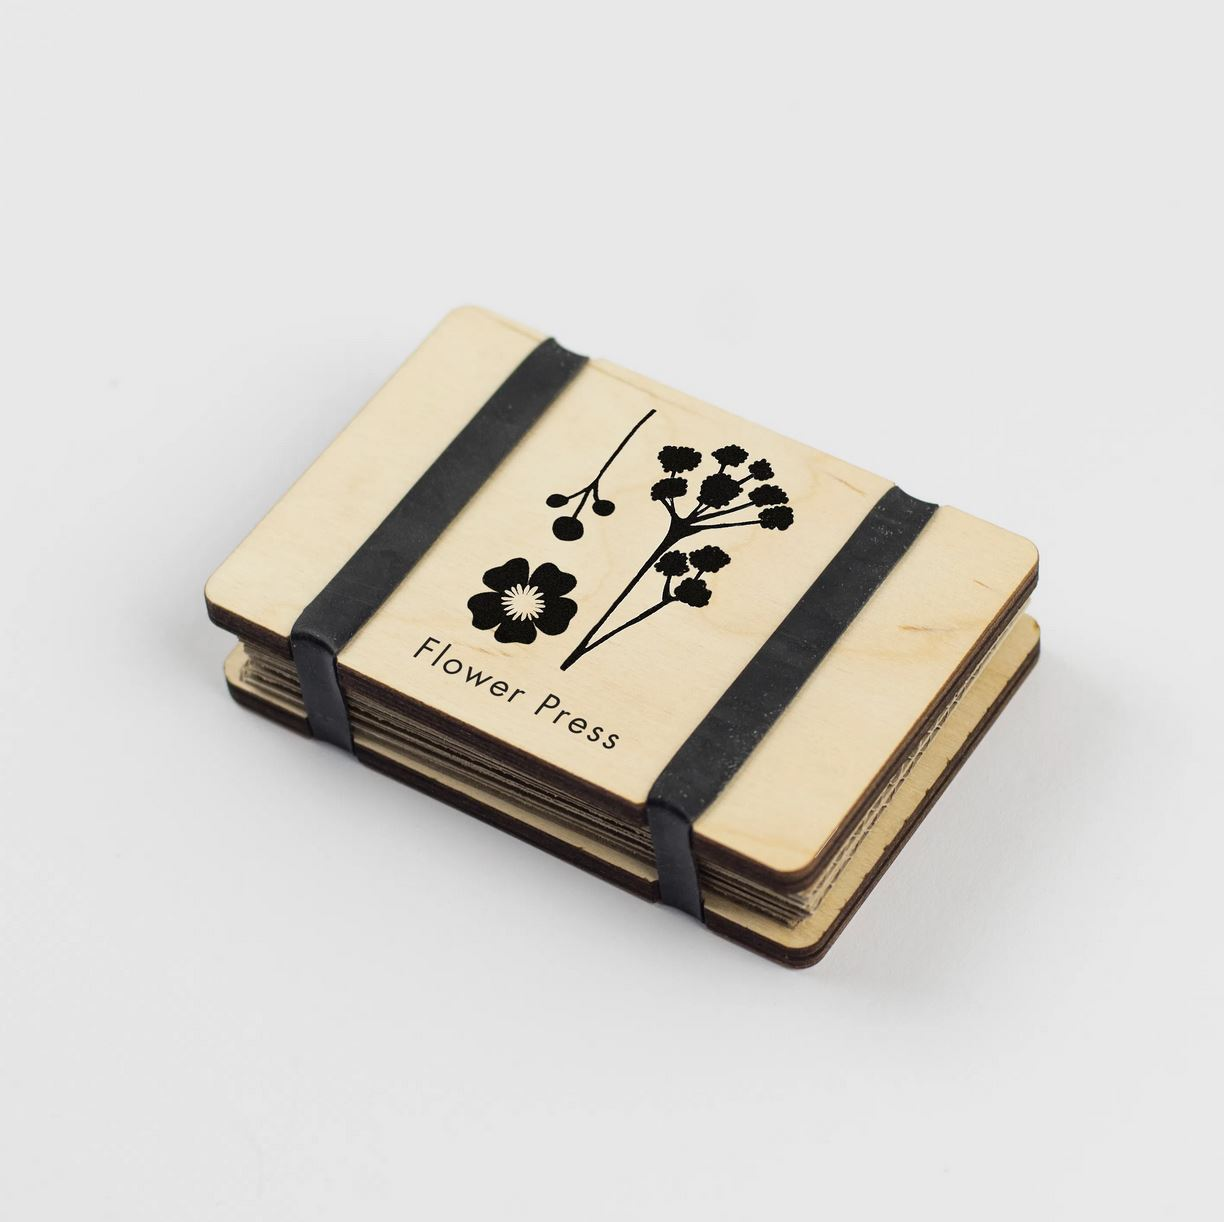 Wald - Pocket Flower Press